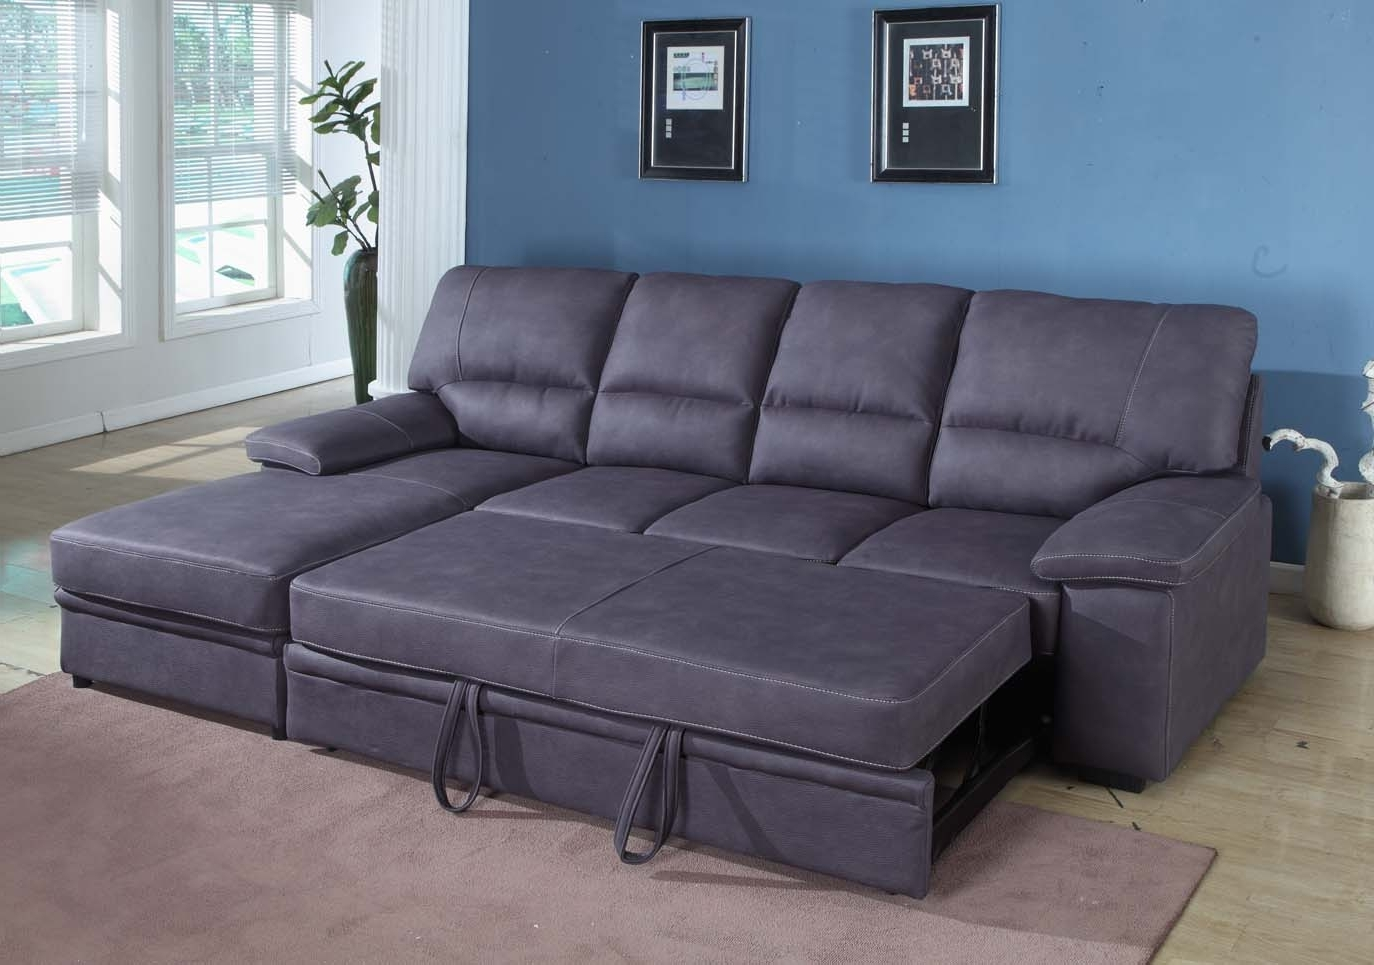 Fashionable Houston Sectional Sofas Inside Grey Sleeper Sectional Sofa (View 3 of 15)